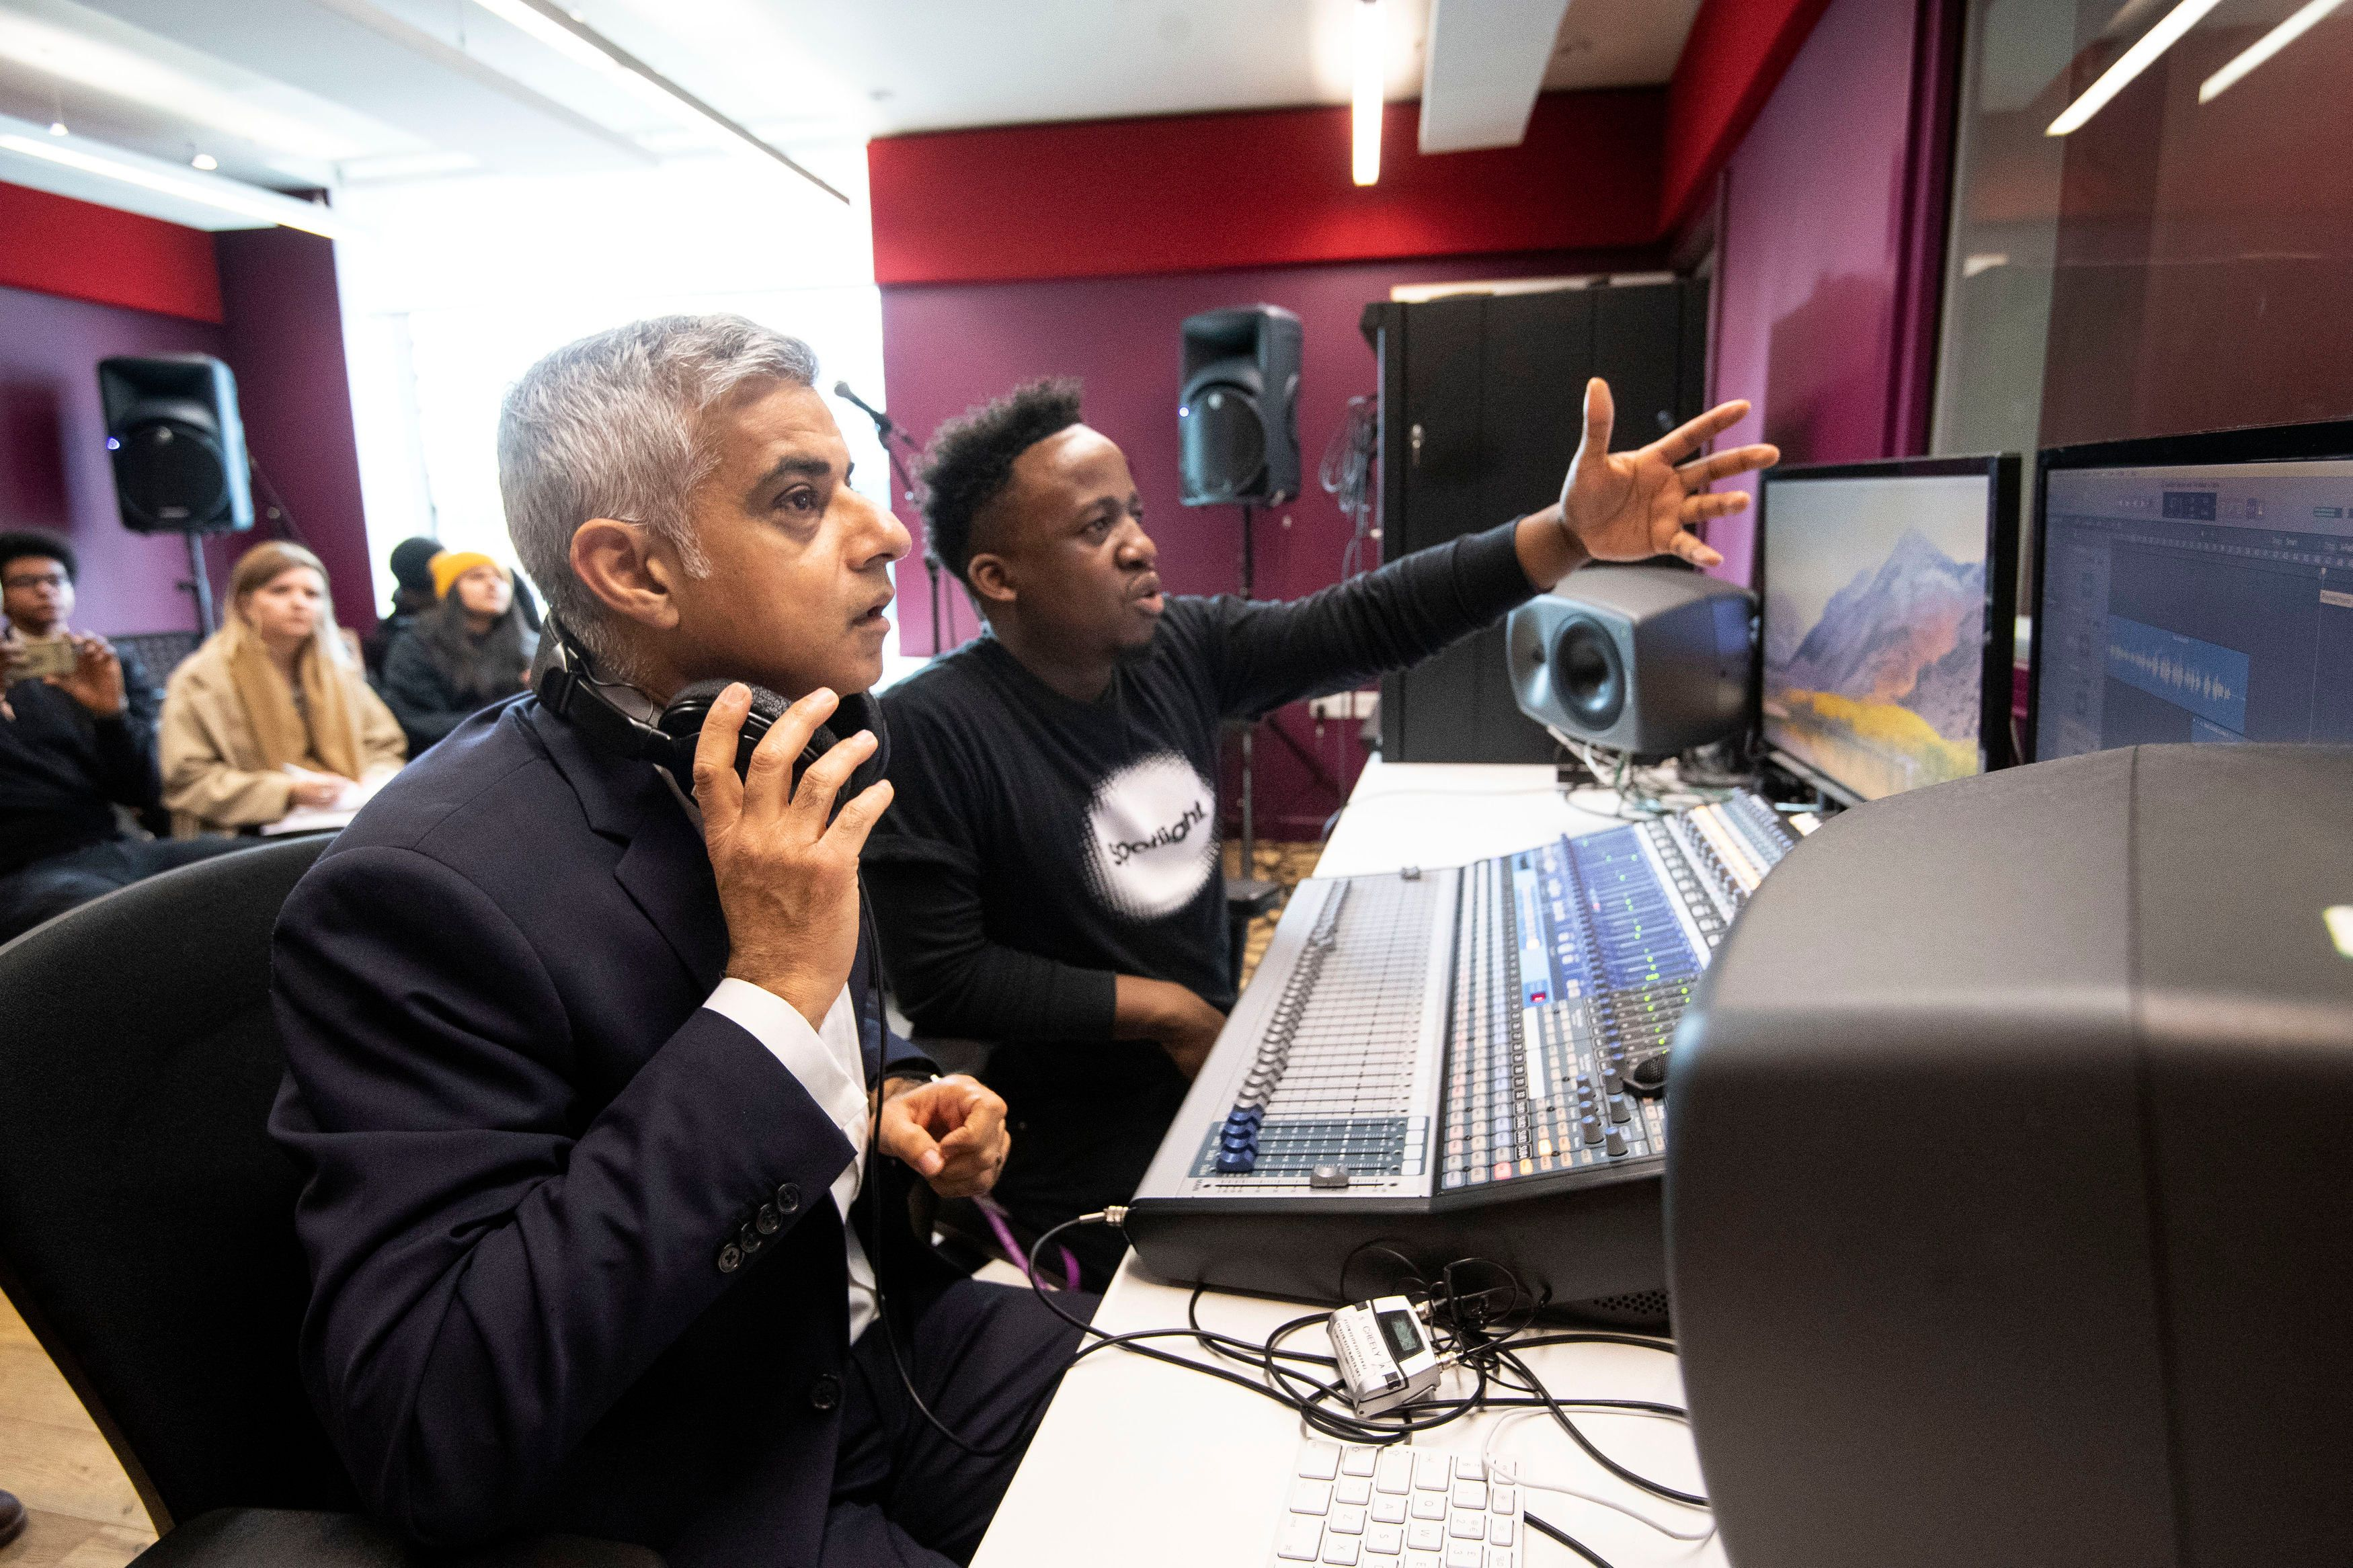 Sadiq Khan Launches Fund To Tackle Youth Violence (Part-Funded By BoJo's Water